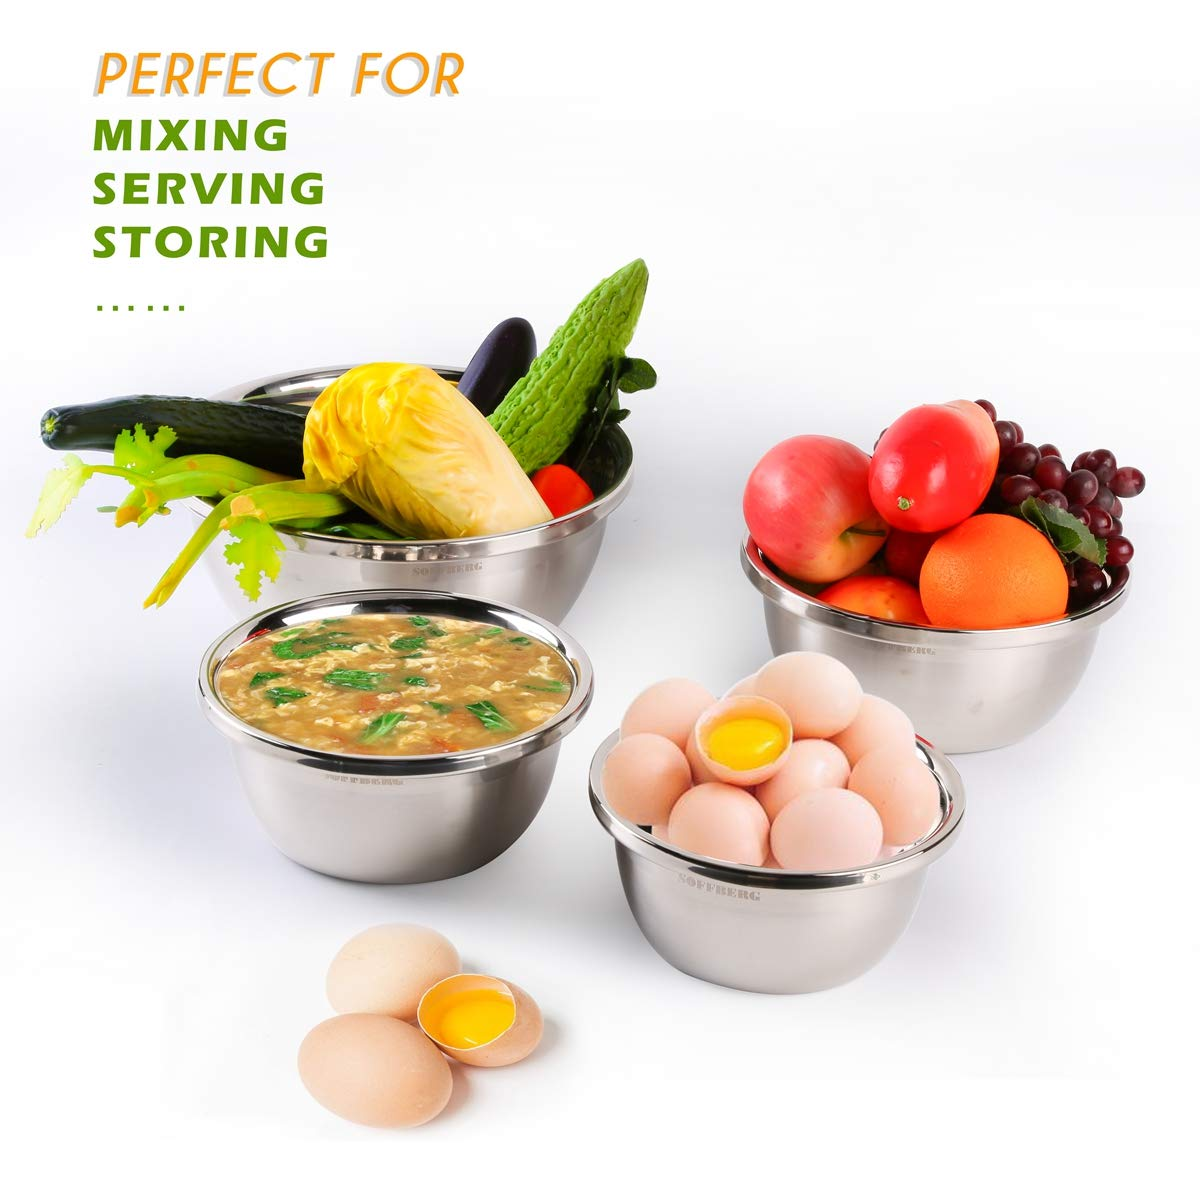 Set of 6 Mixing Bowls Stainless Steel Nesting and Convenient Storage for Meal prep, Salad, Cooking, Baking, Serving by SOFFBERG (Image #6)